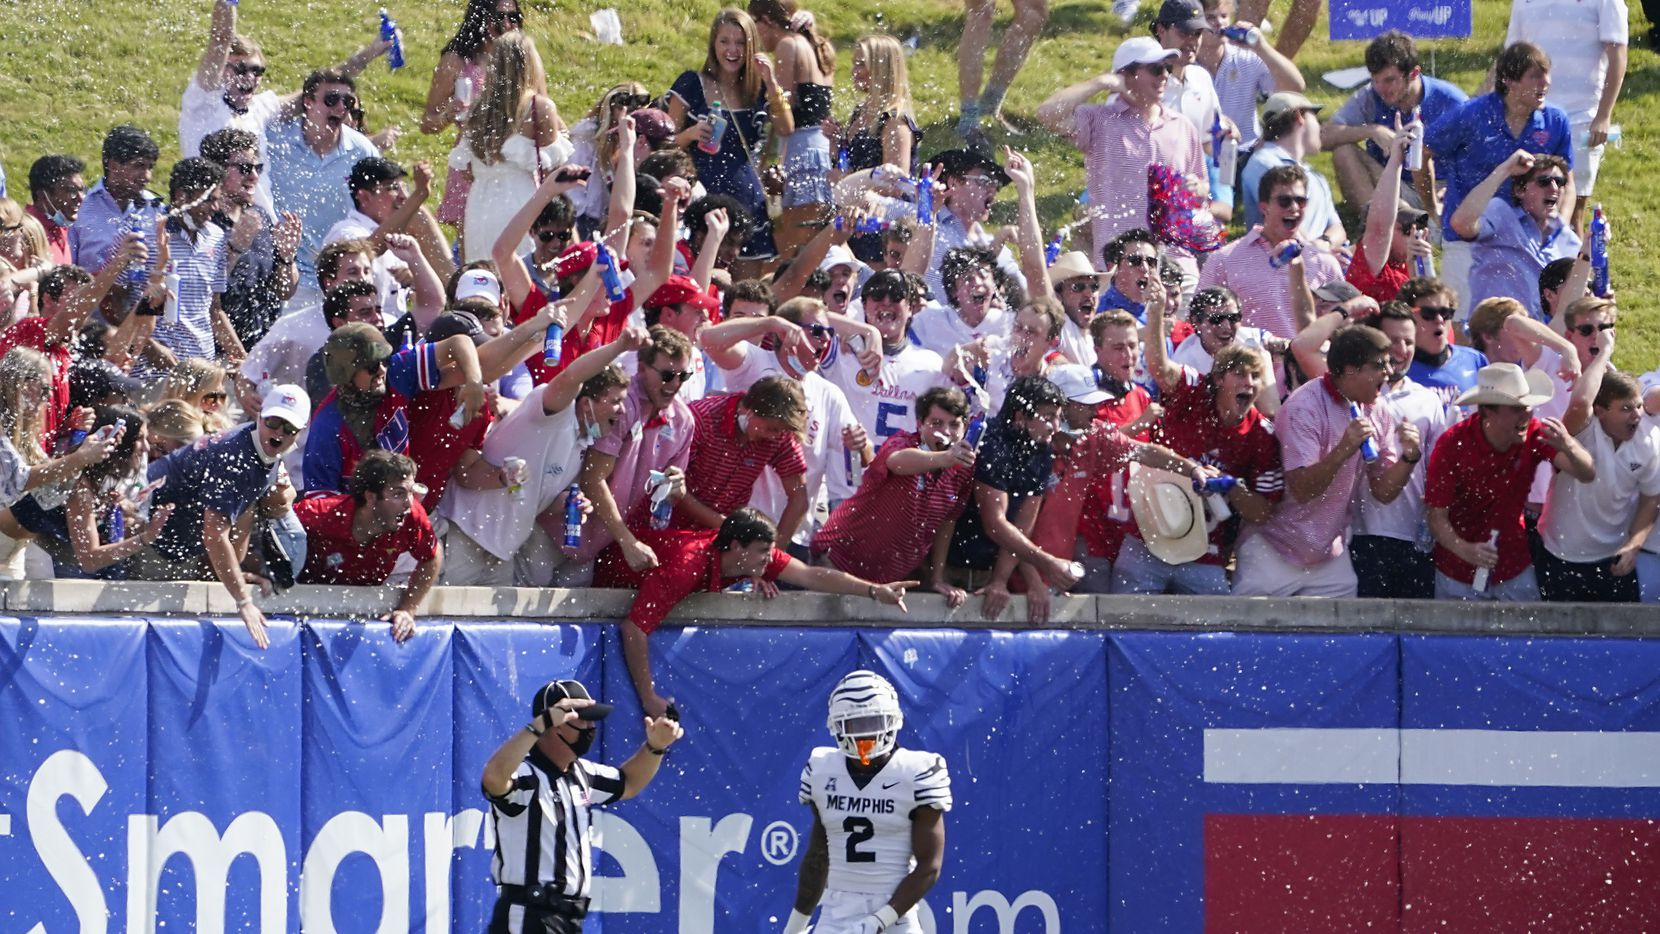 SMU fans in the student section on the hill cheer after a touchdown by wide receiver Reggie Roberson Jr. as Memphis defensive back T.J. Carter (2) turns away during the first half of an NCAA football game at Ford Stadium on Saturday, Oct. 3, 2020, in Dallas. (Smiley N. Pool/The Dallas Morning News)